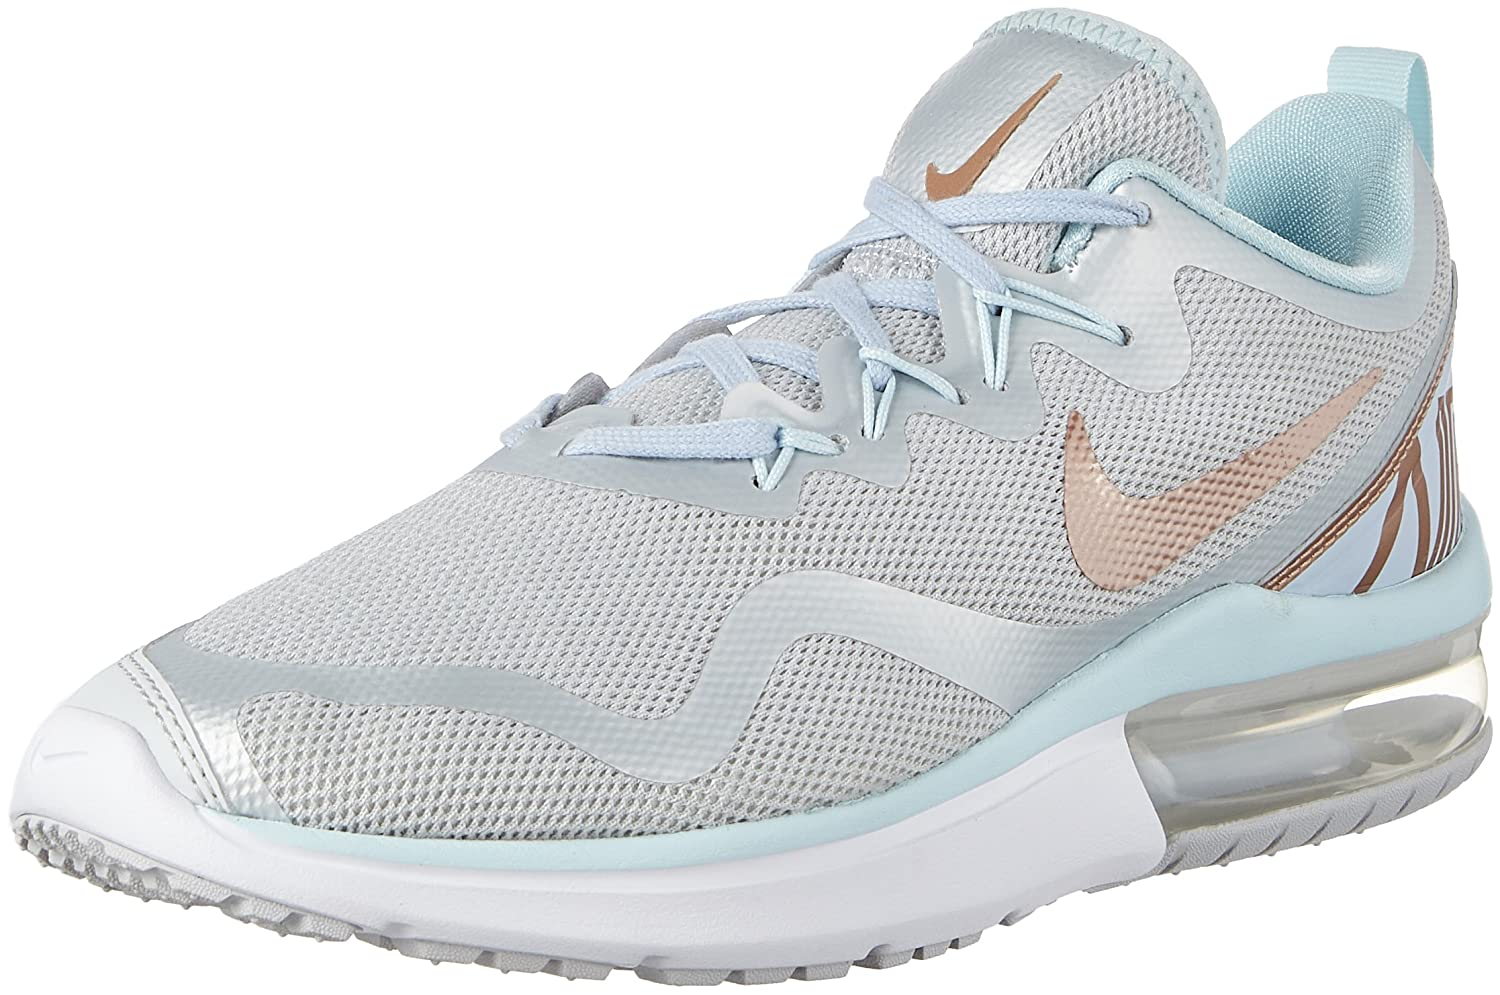 0f65fc2bcec775 Nike Women s Shoes Air Max Fury Sneakers Pure Platinum Metallic Red Bronze  Glacier Blue AA5740 005